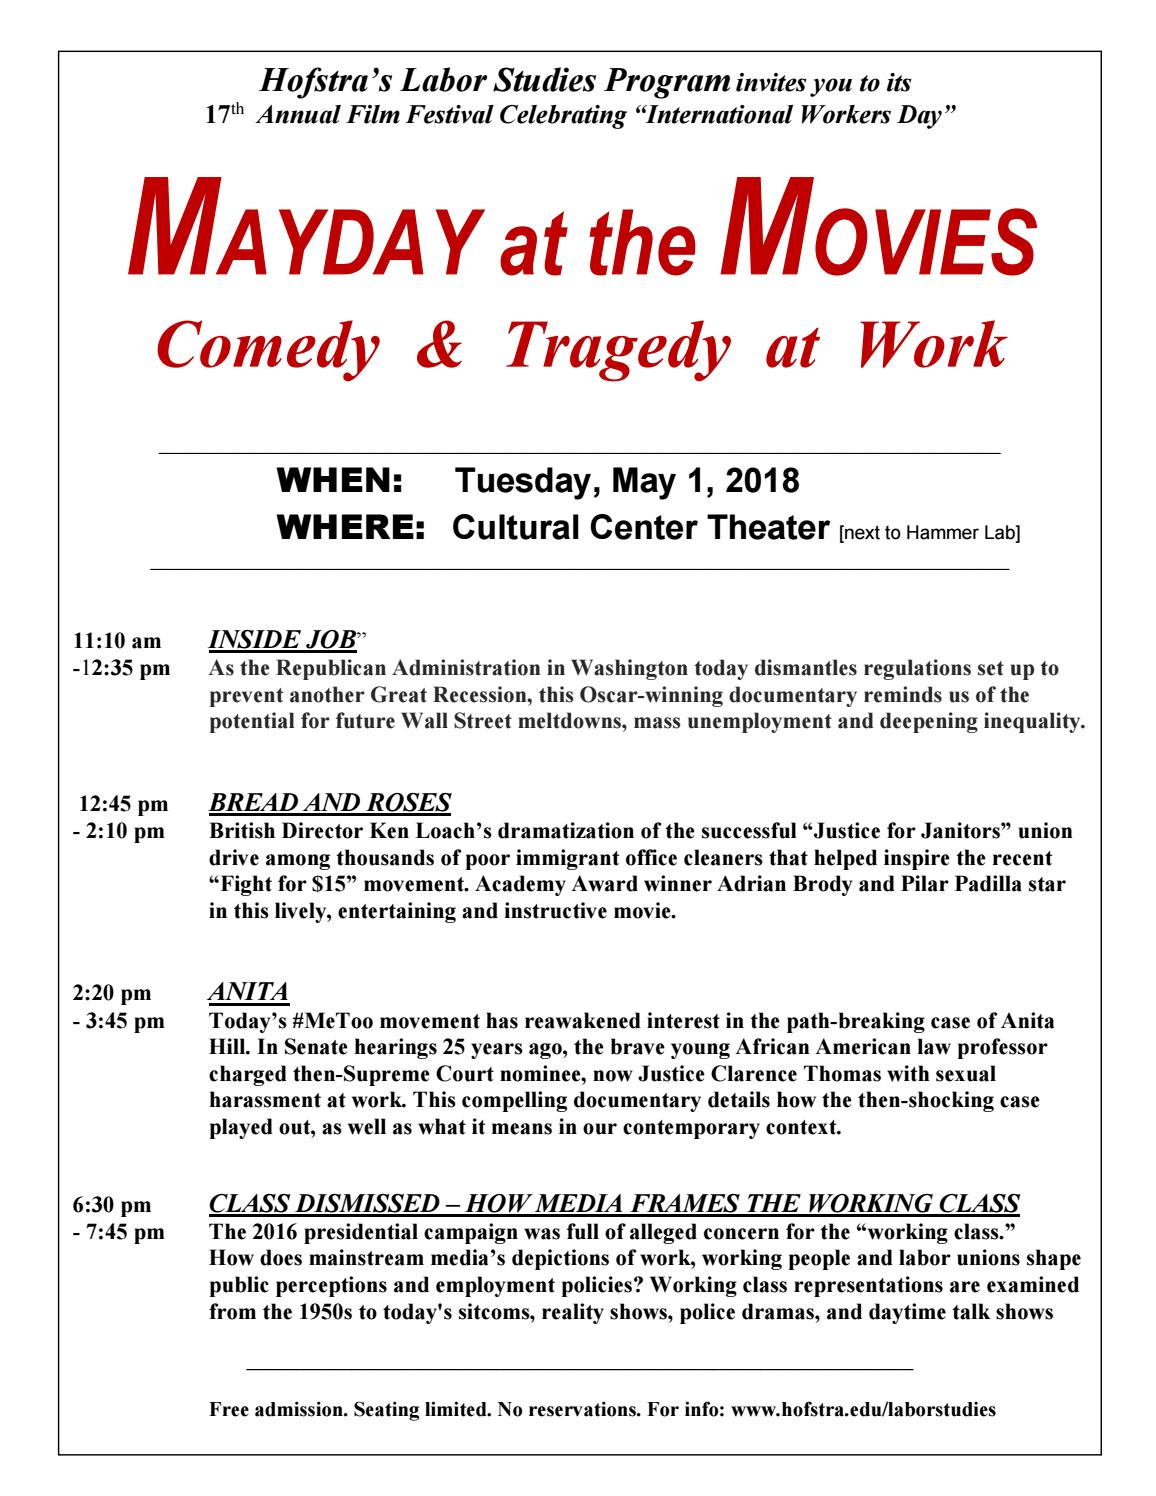 Mayday At The Movies 2018 Film Schedule By Hofstra University Issuu